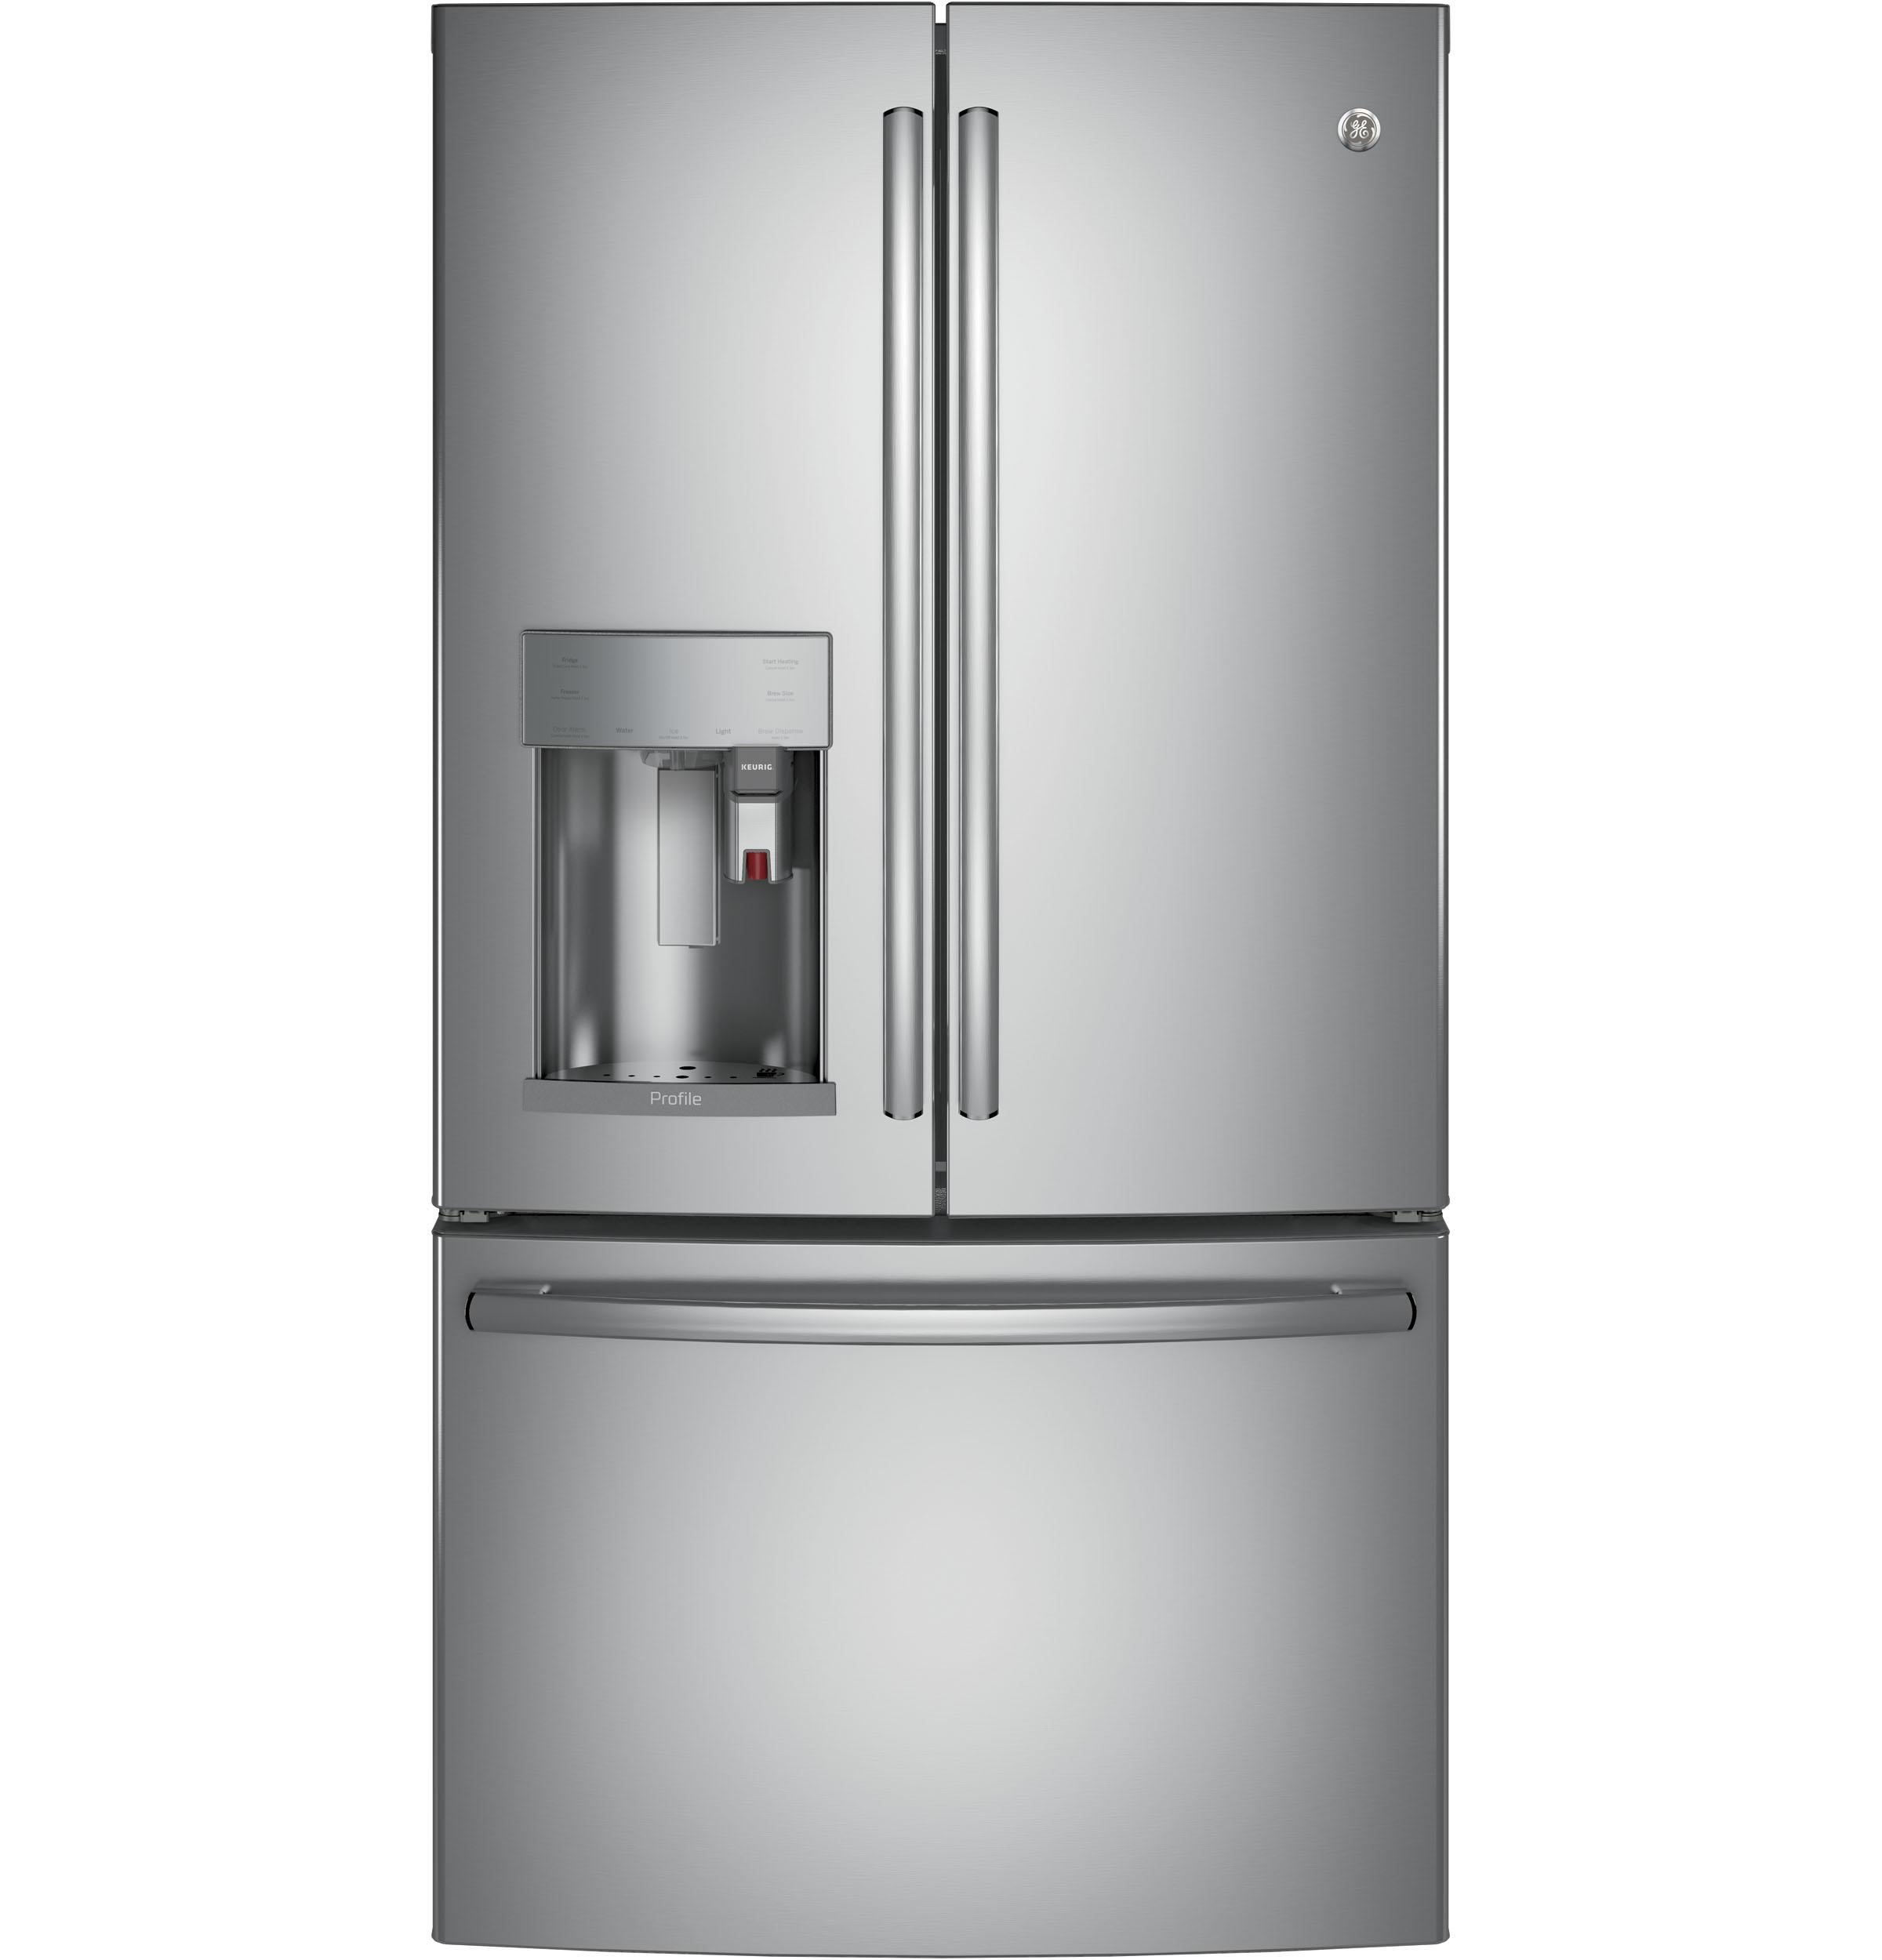 GE Profile(TM) Series ENERGY STAR(R) 22.2 Cu. Ft. Counter-Depth French-Door Refrigerator with Keurig(R) K-Cup(R) Brewing System